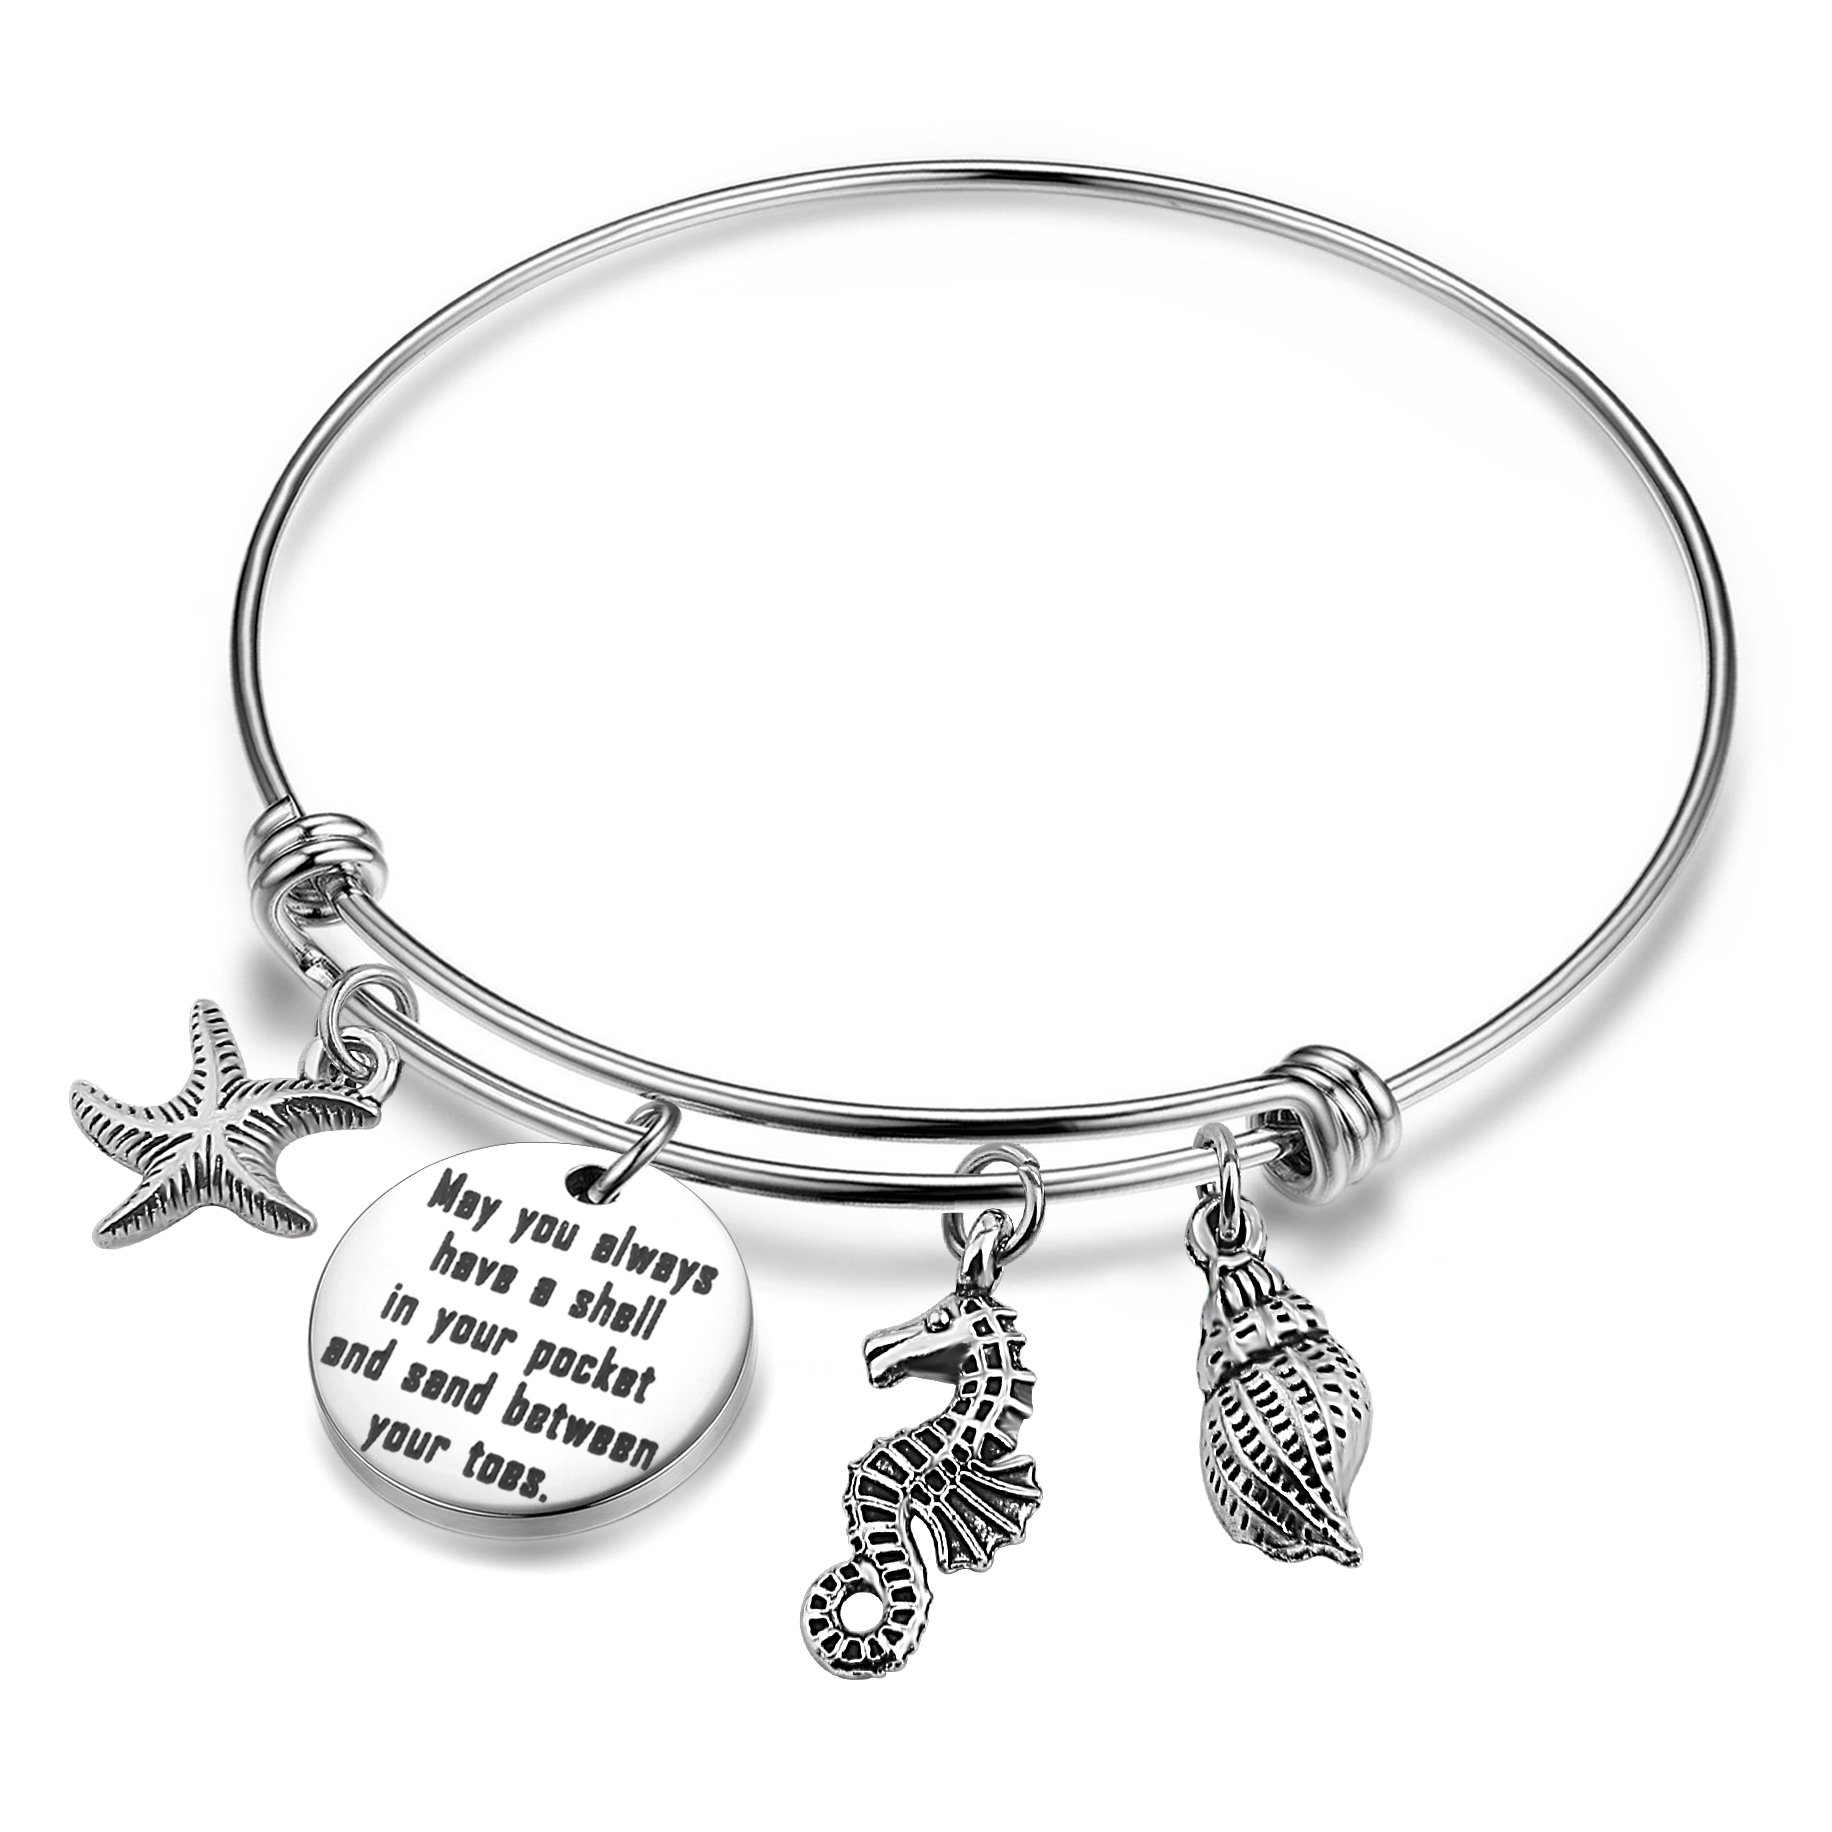 SEIRAA Beach Jewelry May you Always Have a Shell in Your Pocket and Sand Between Your Toes Expandable Charm Bracelet (bracelet)